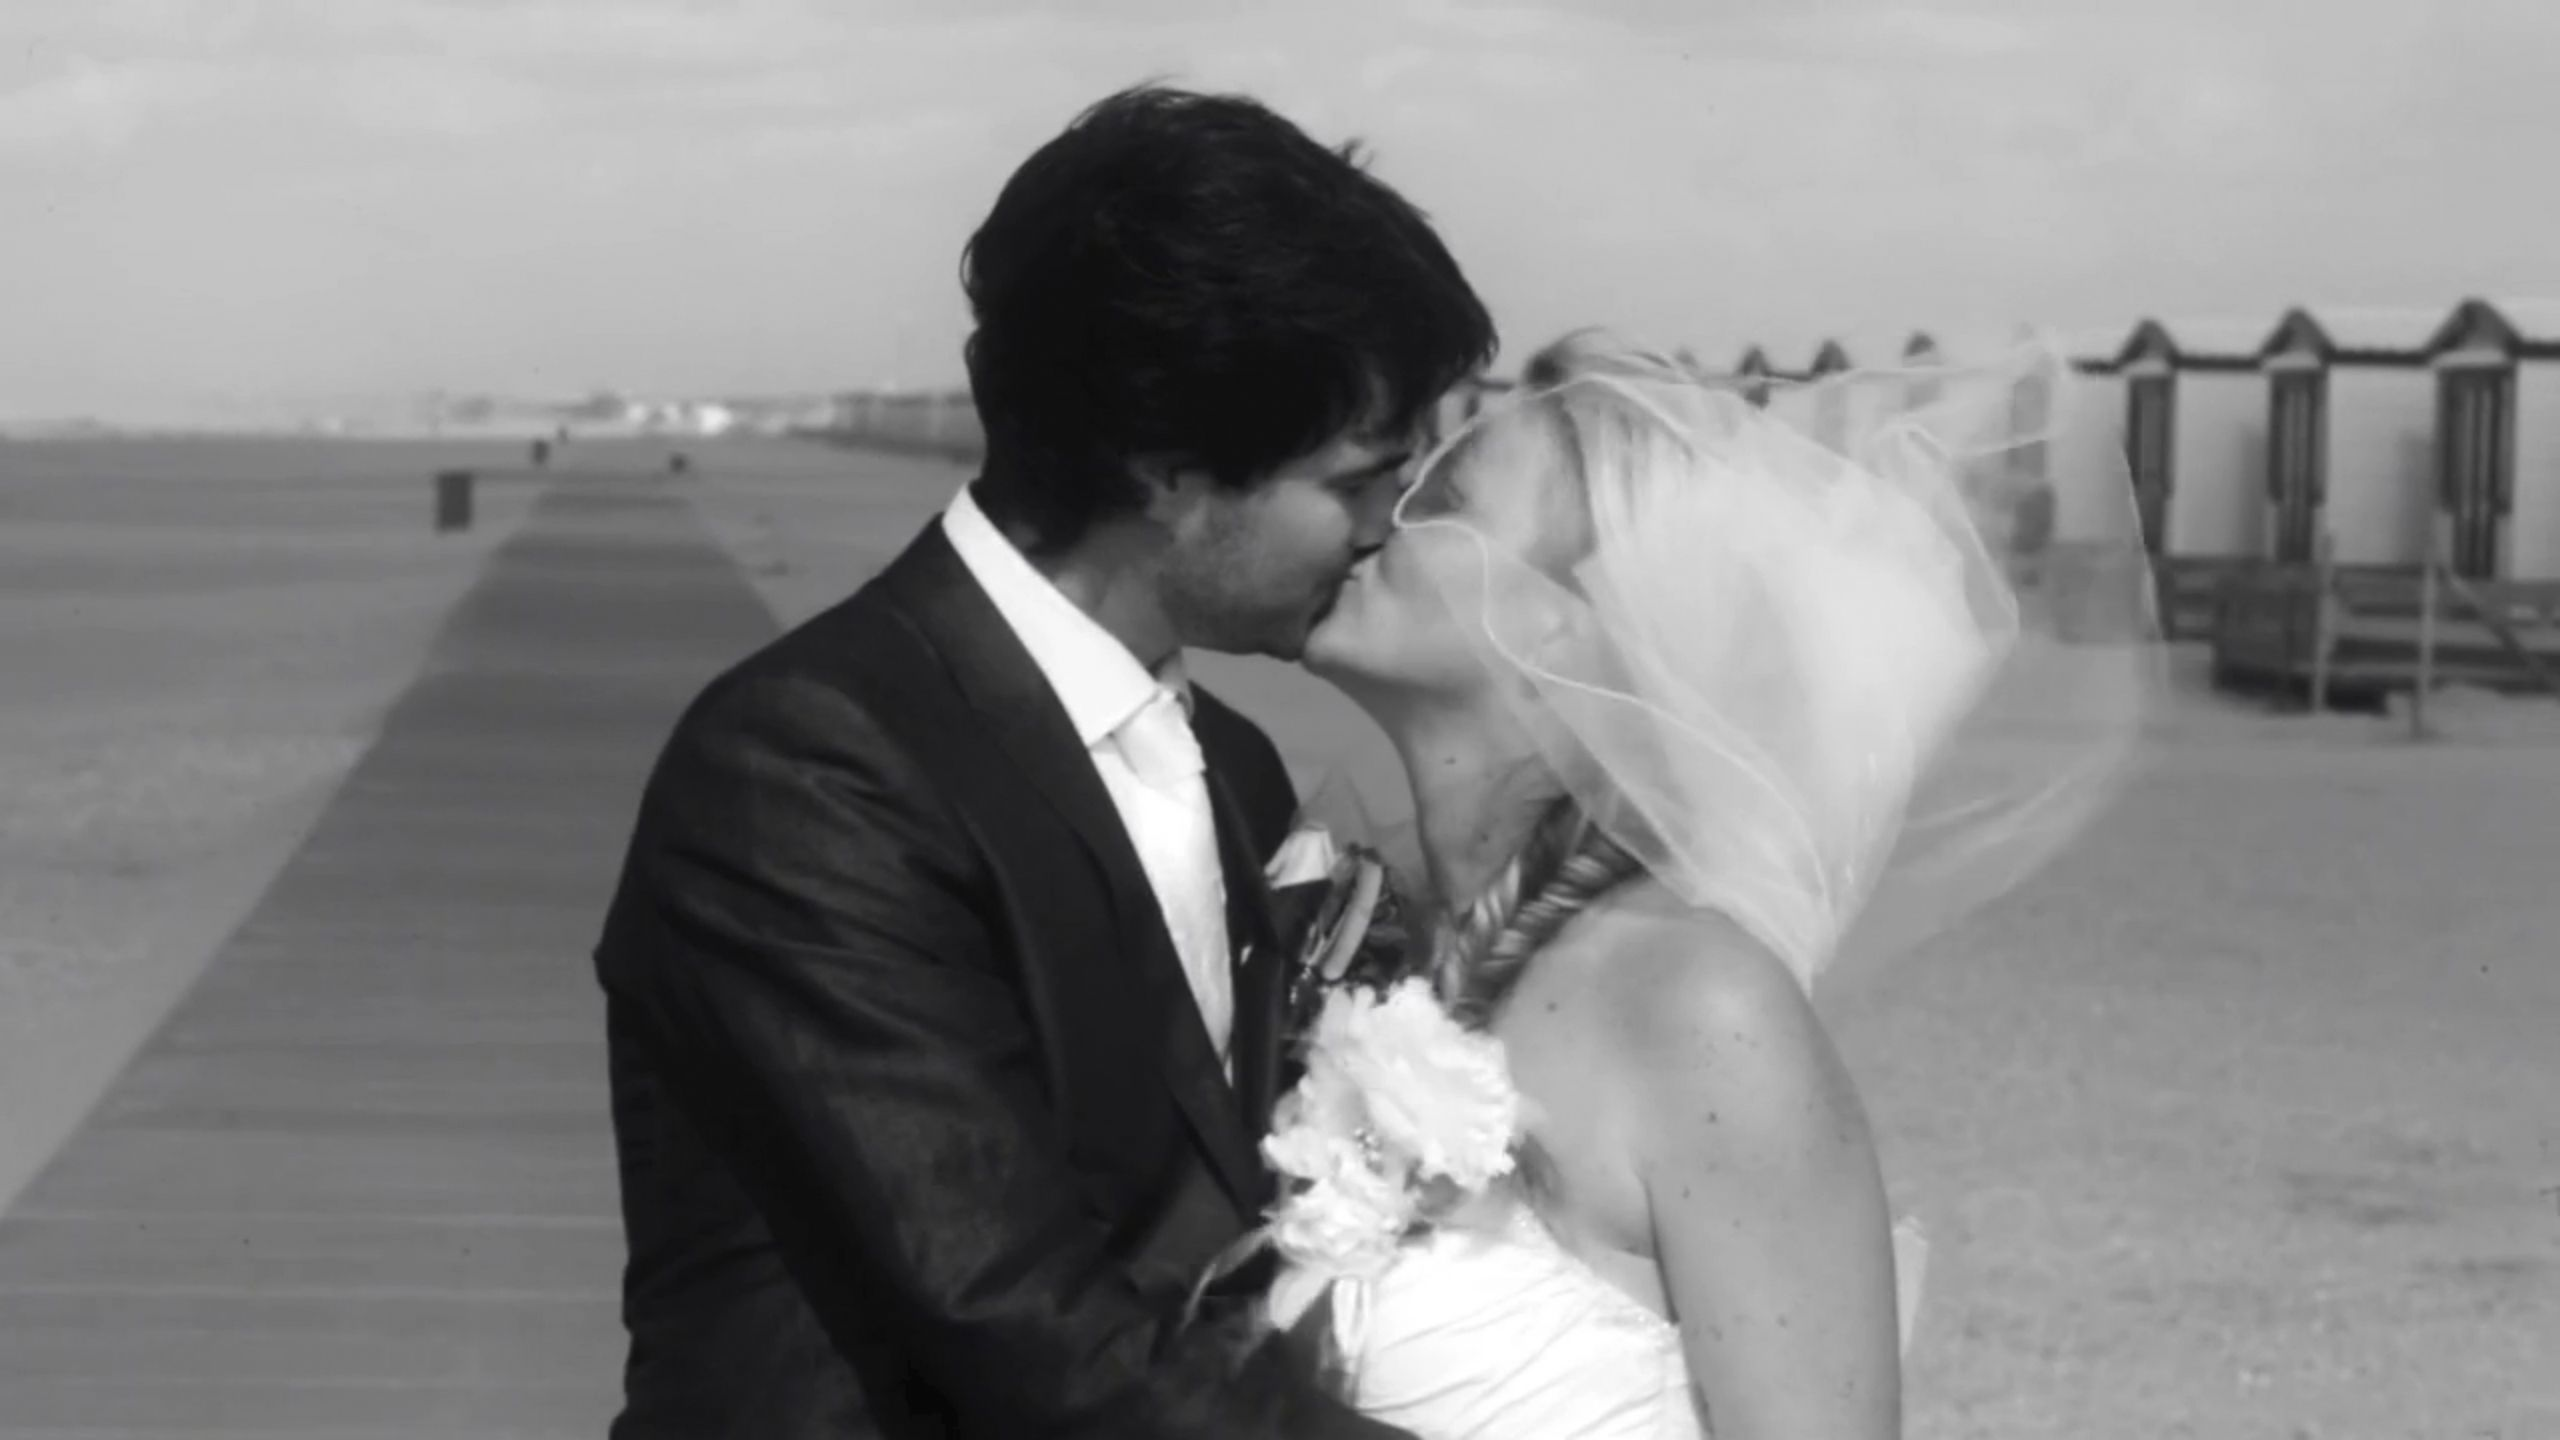 On a long stretch of beach, sealed with a kiss...